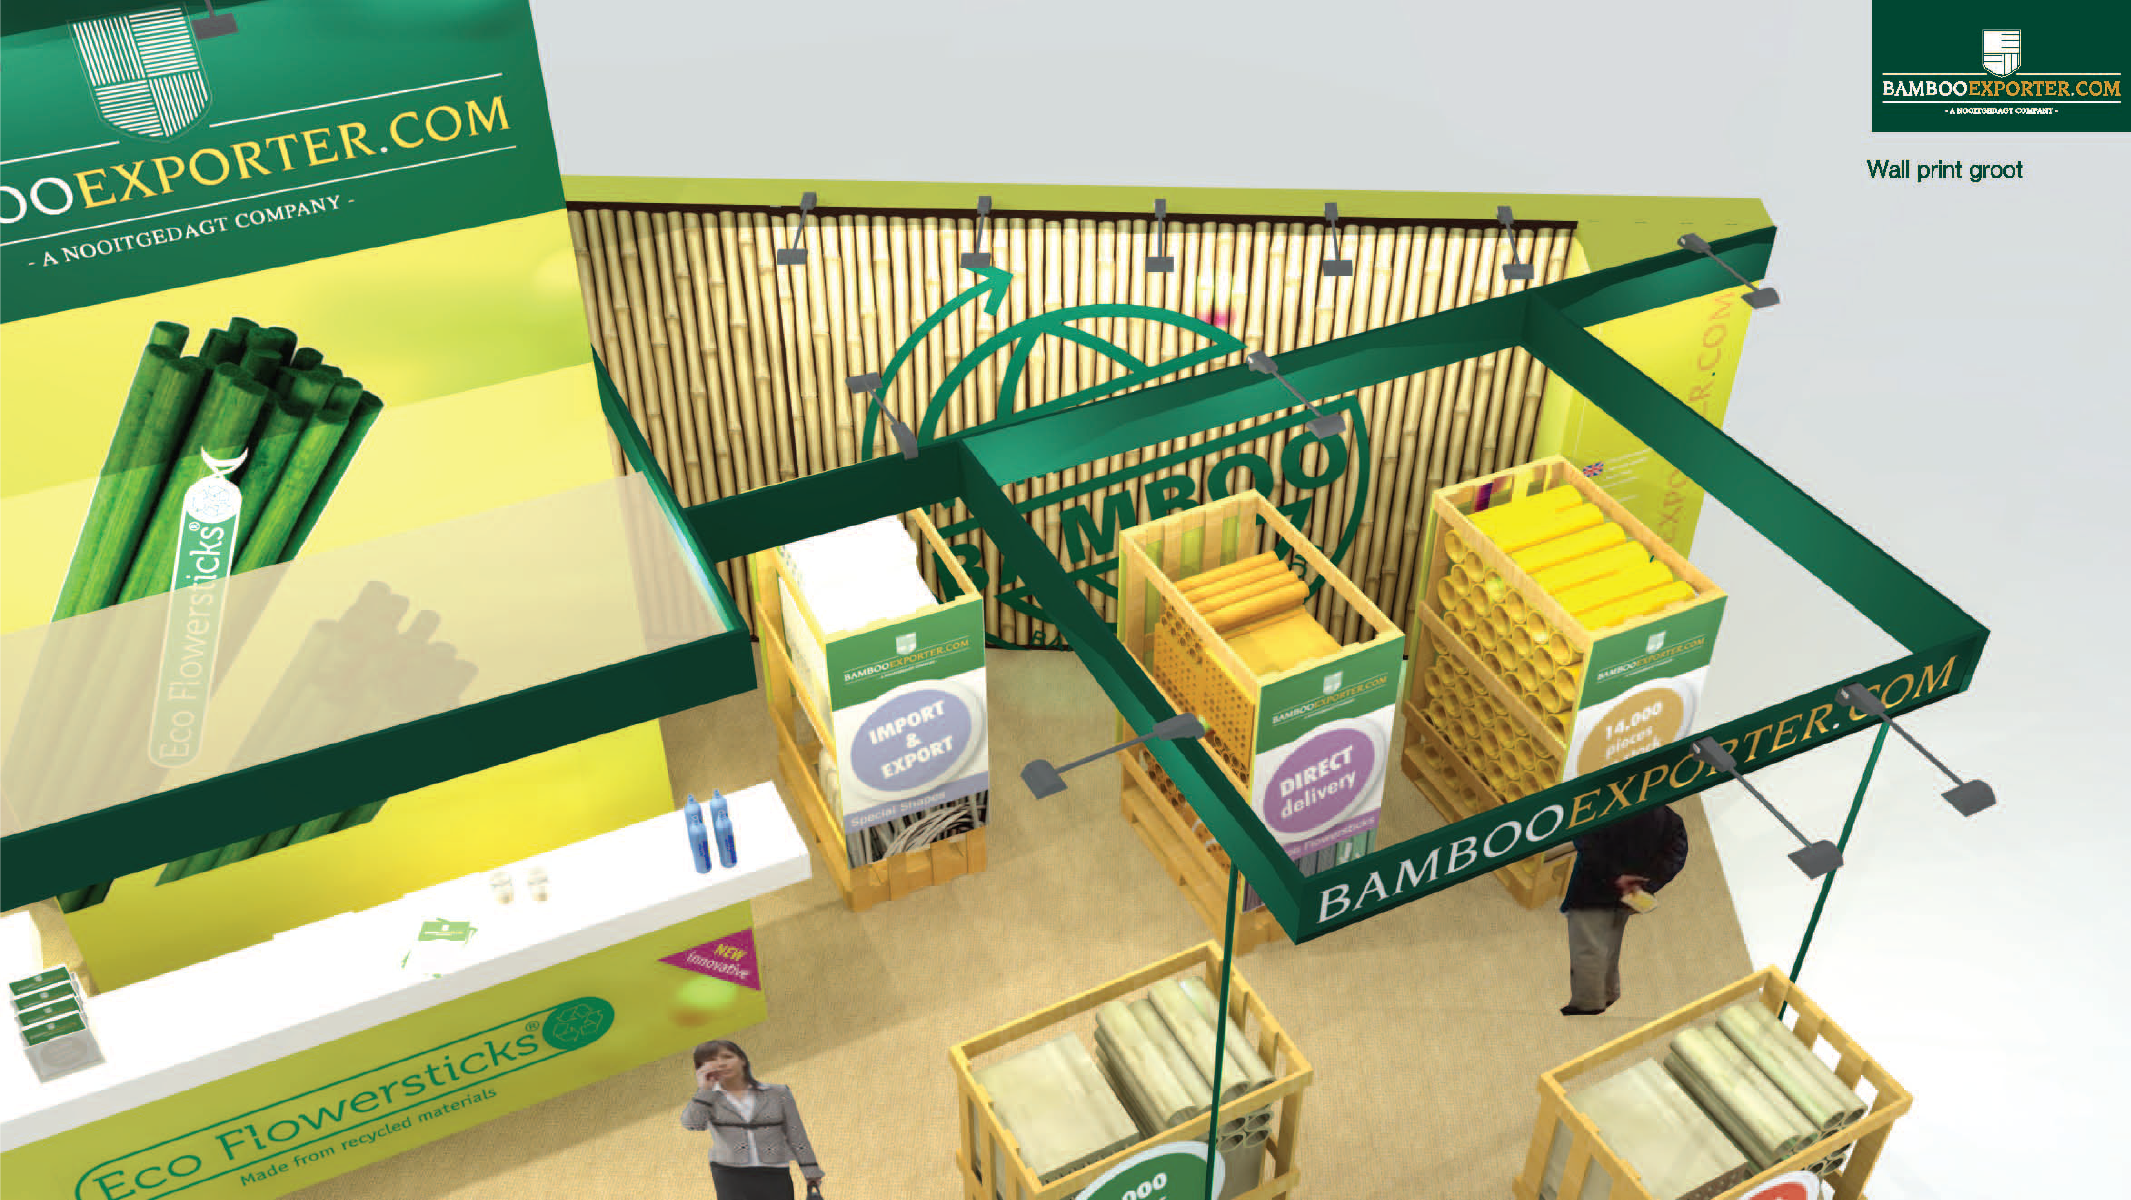 Bamboo_Exporter-stand-Project-05